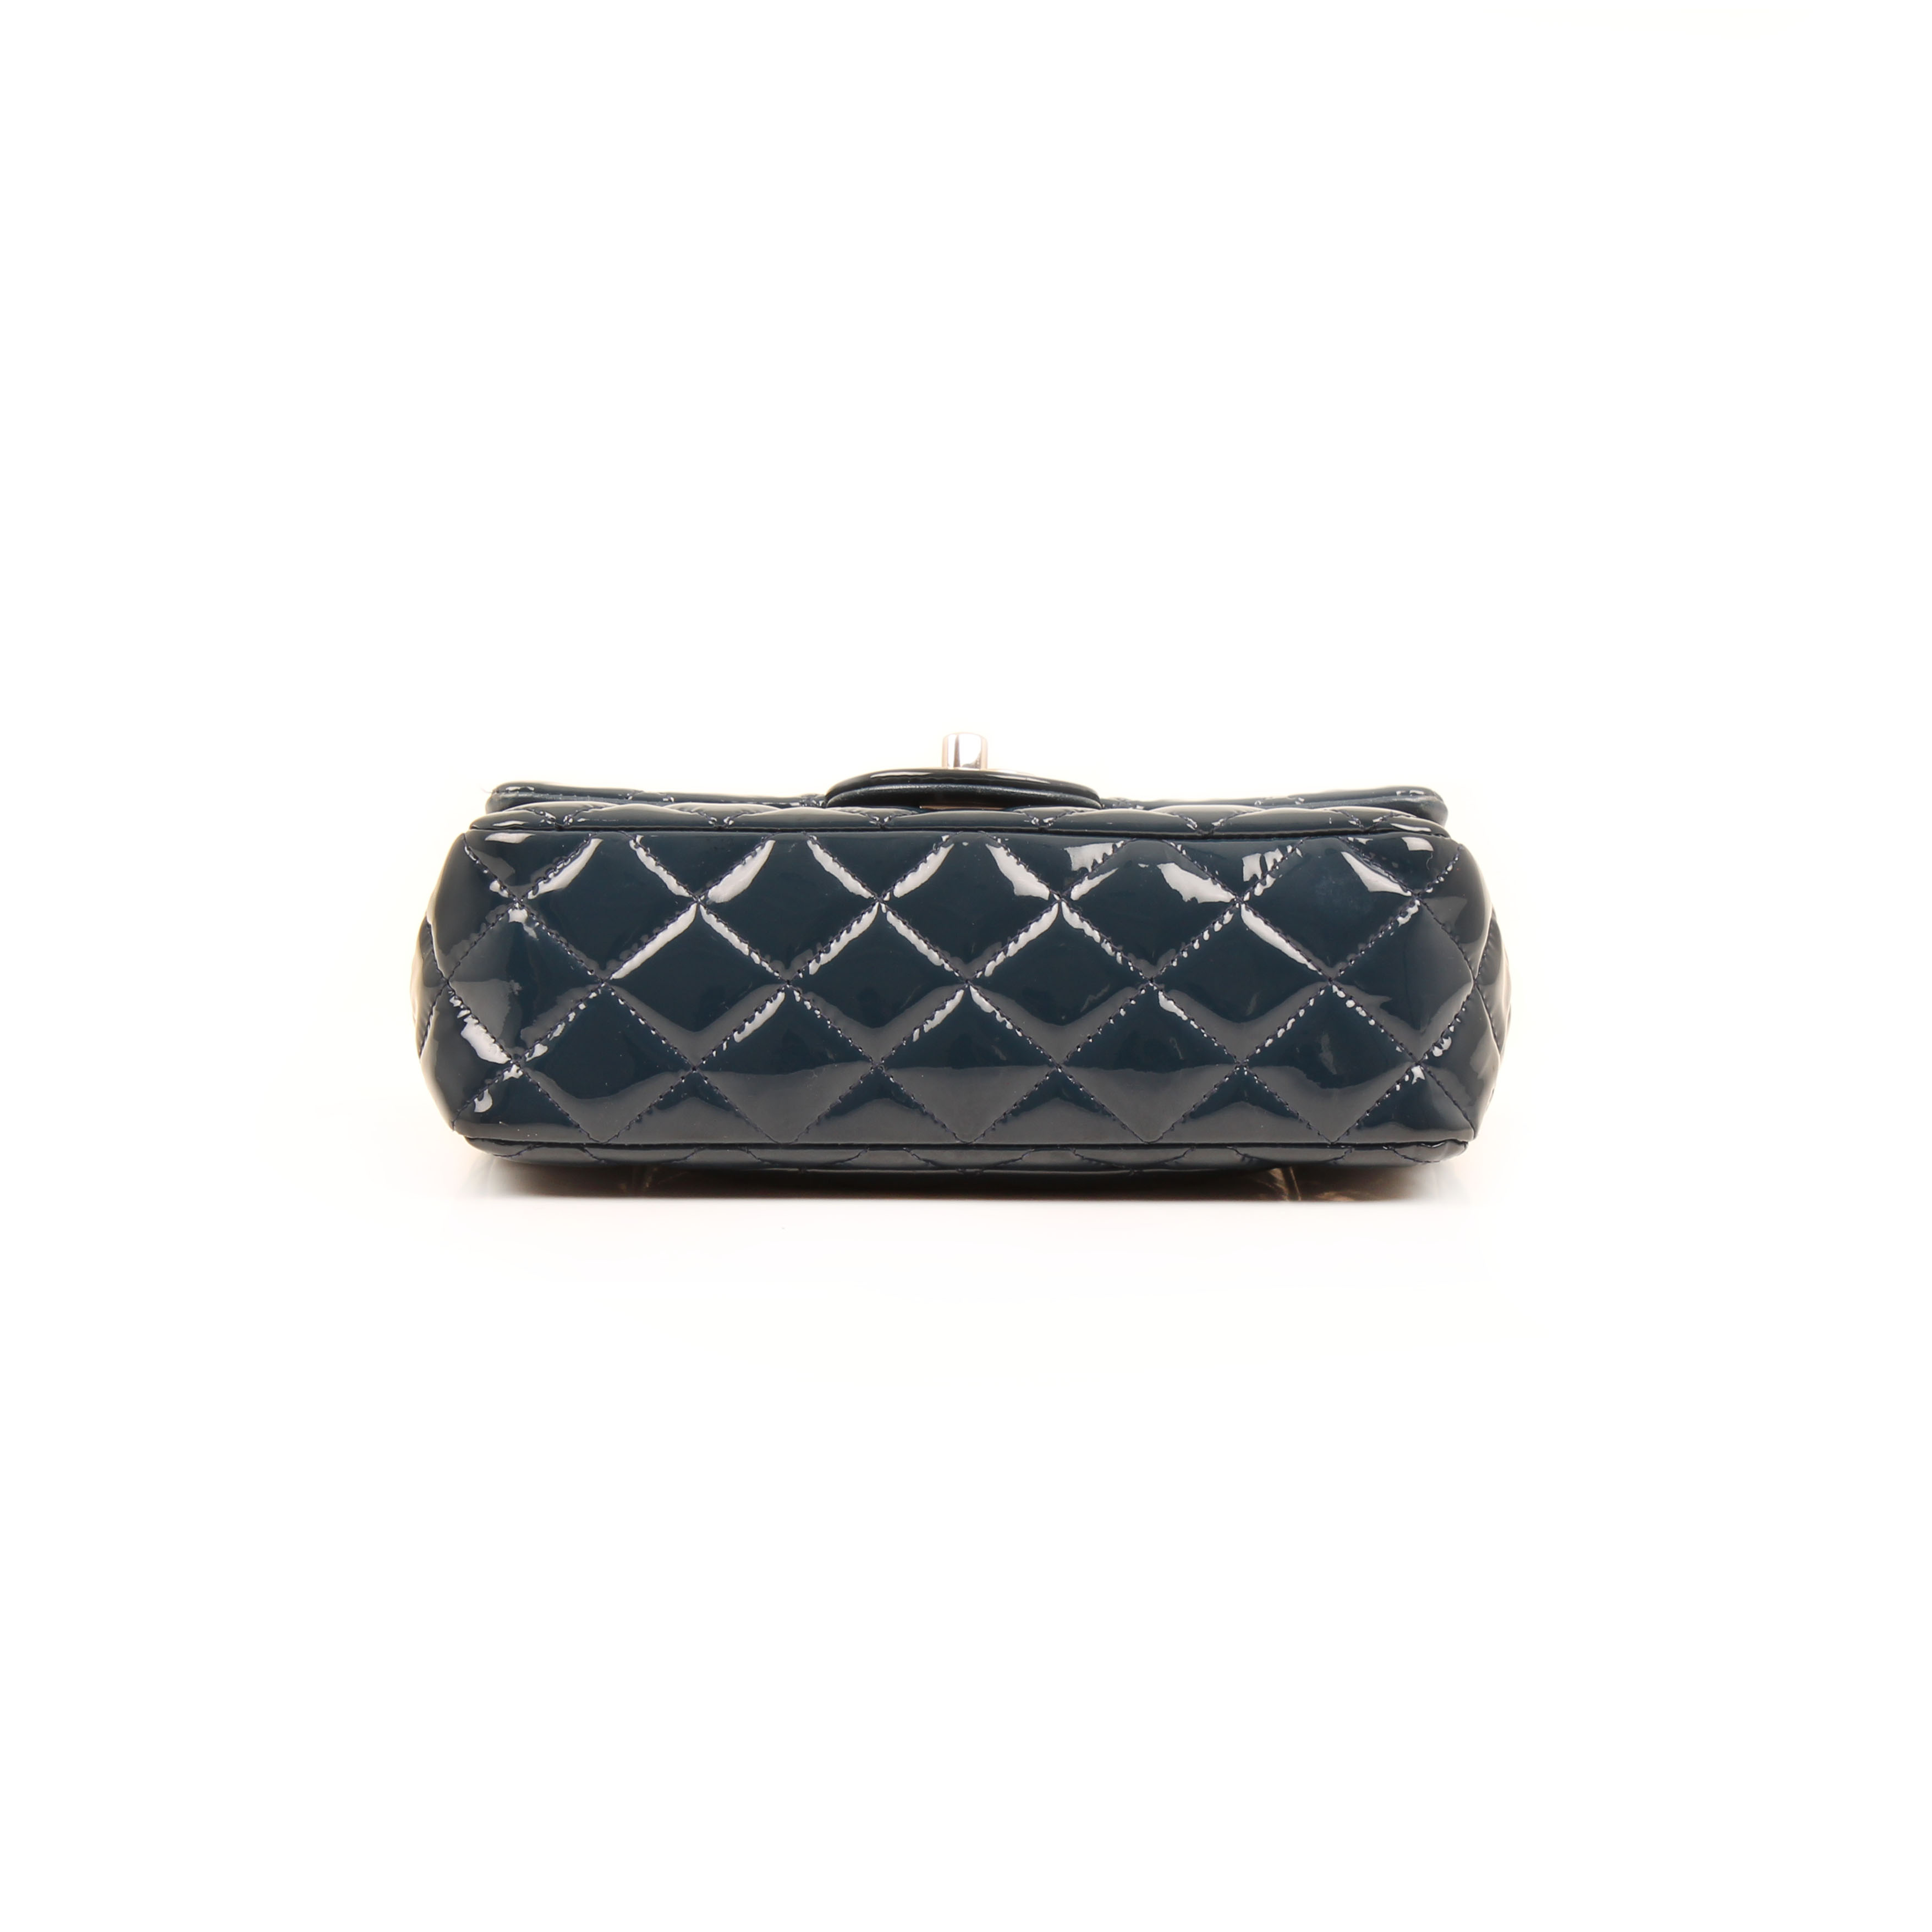 Imagen de la base del bolso chanel classic mini rectangular timeless charol azul